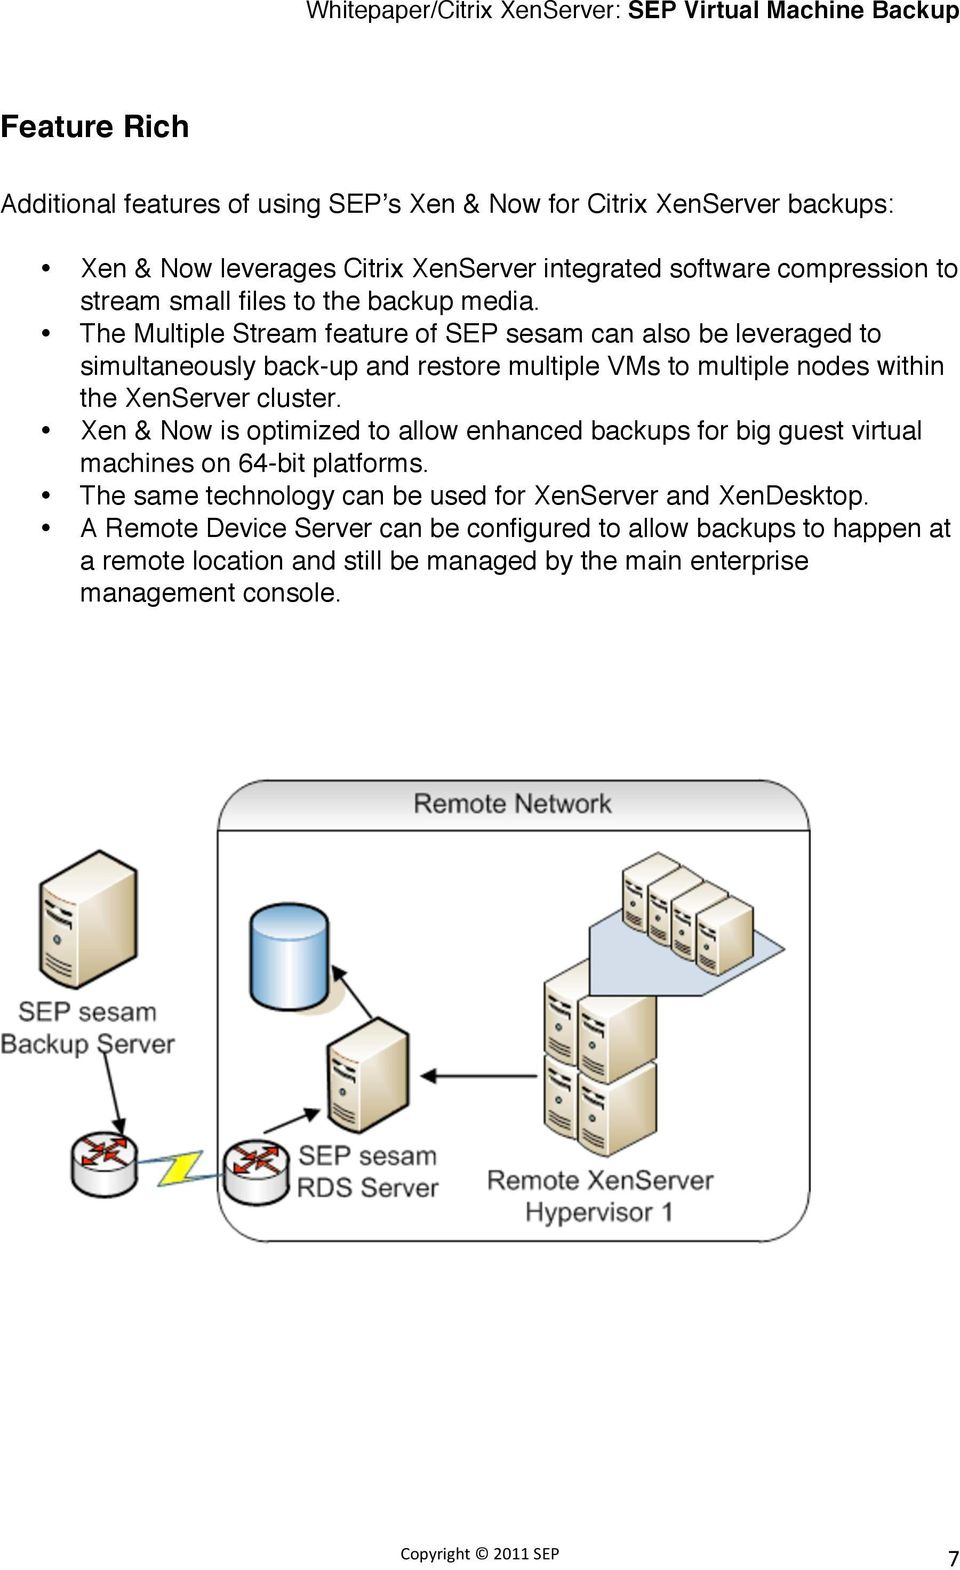 The Multiple Stream feature of SEP sesam can also be leveraged to simultaneously back-up and restore multiple VMs to multiple nodes within the XenServer cluster.